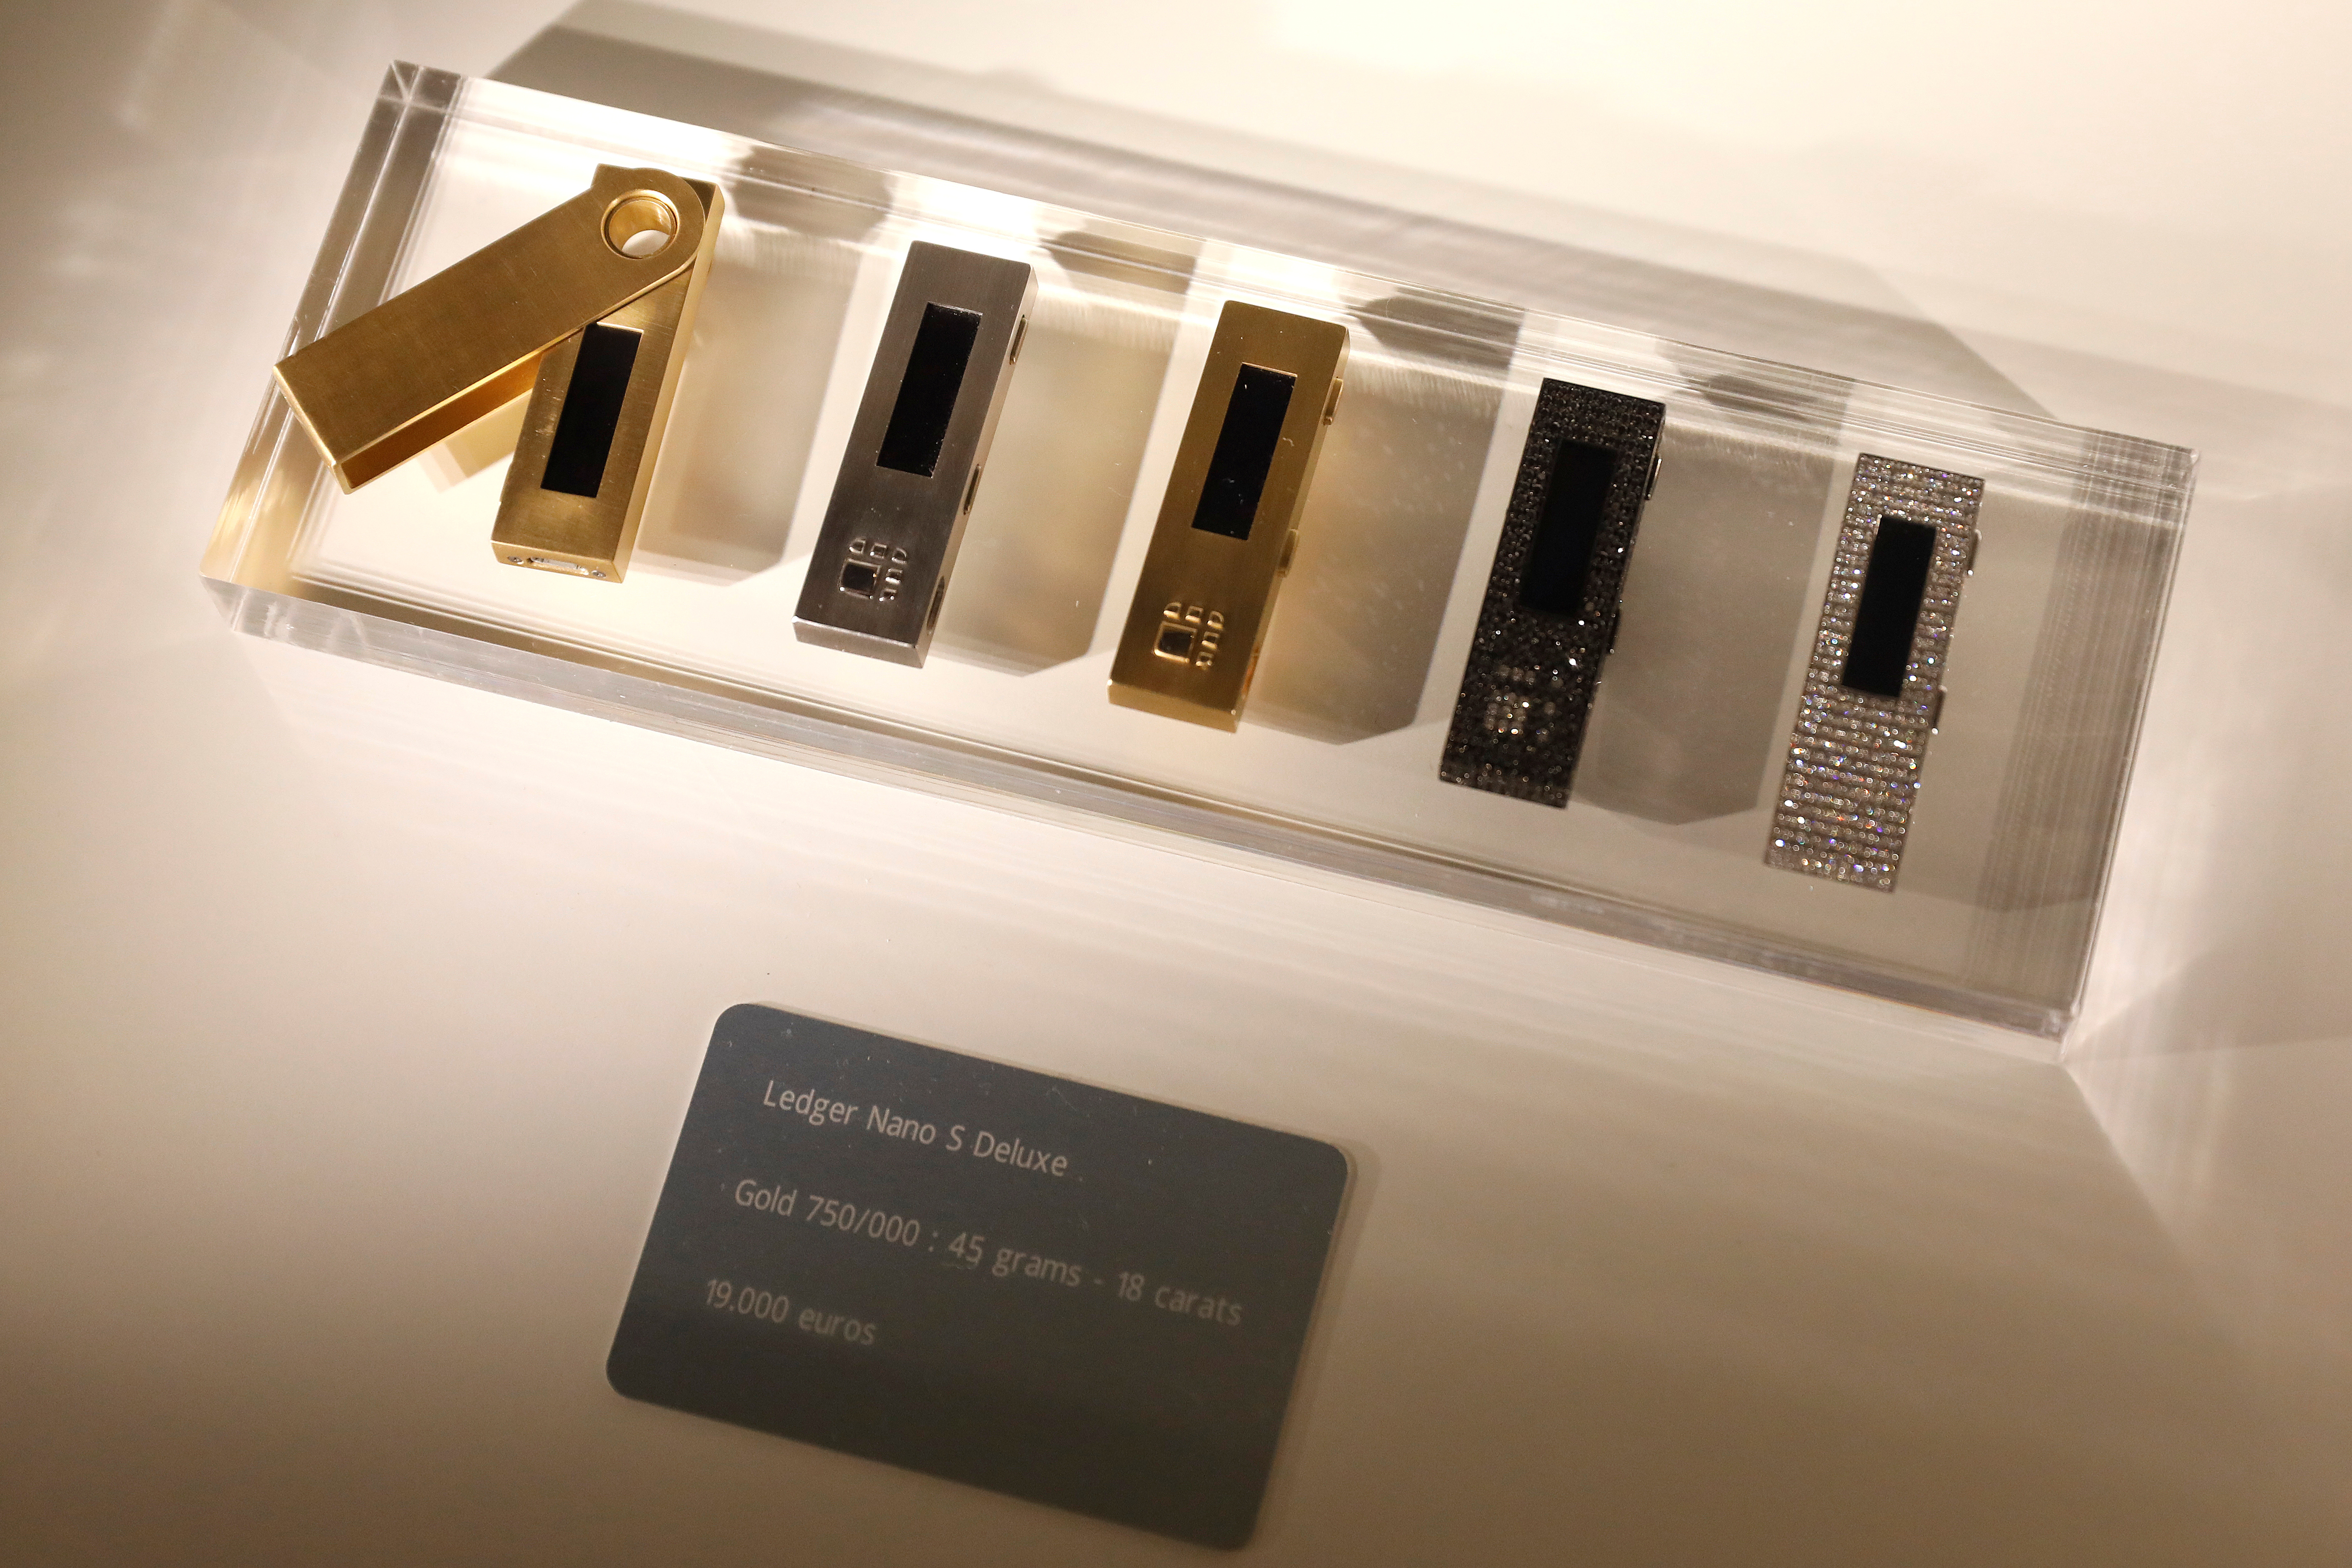 Ledger Nano S cryptocurrency hardware wallets are seen for sale on the floor of the Consensus 2018 blockchain technology conference in New York City, New York, U.S., May 16, 2018. REUTERS/Mike Segar